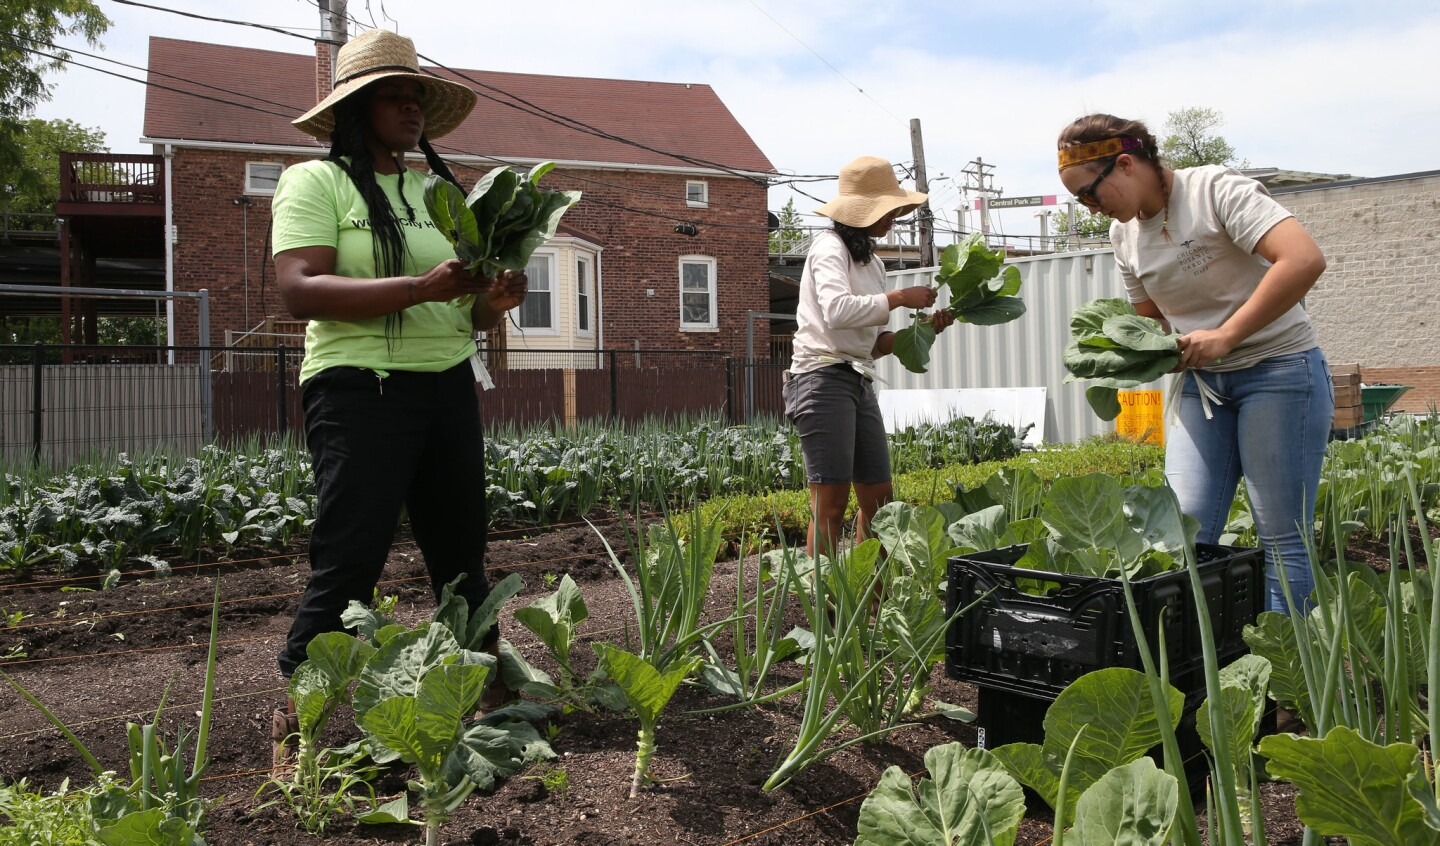 Apprentice Kimberly Jones, from left, grower Michelle Gray and college intern Robyn Van Staalduinen harvest collard greens June 6, 2018, at the Farm on Ogden, a 20,000-square-foot urban farm set to open June 22 in Chicago's North Lawndale community. The Farm on Ogden is a partnership between Lawndale Christian Health Center and the Chicago Botanic Garden.